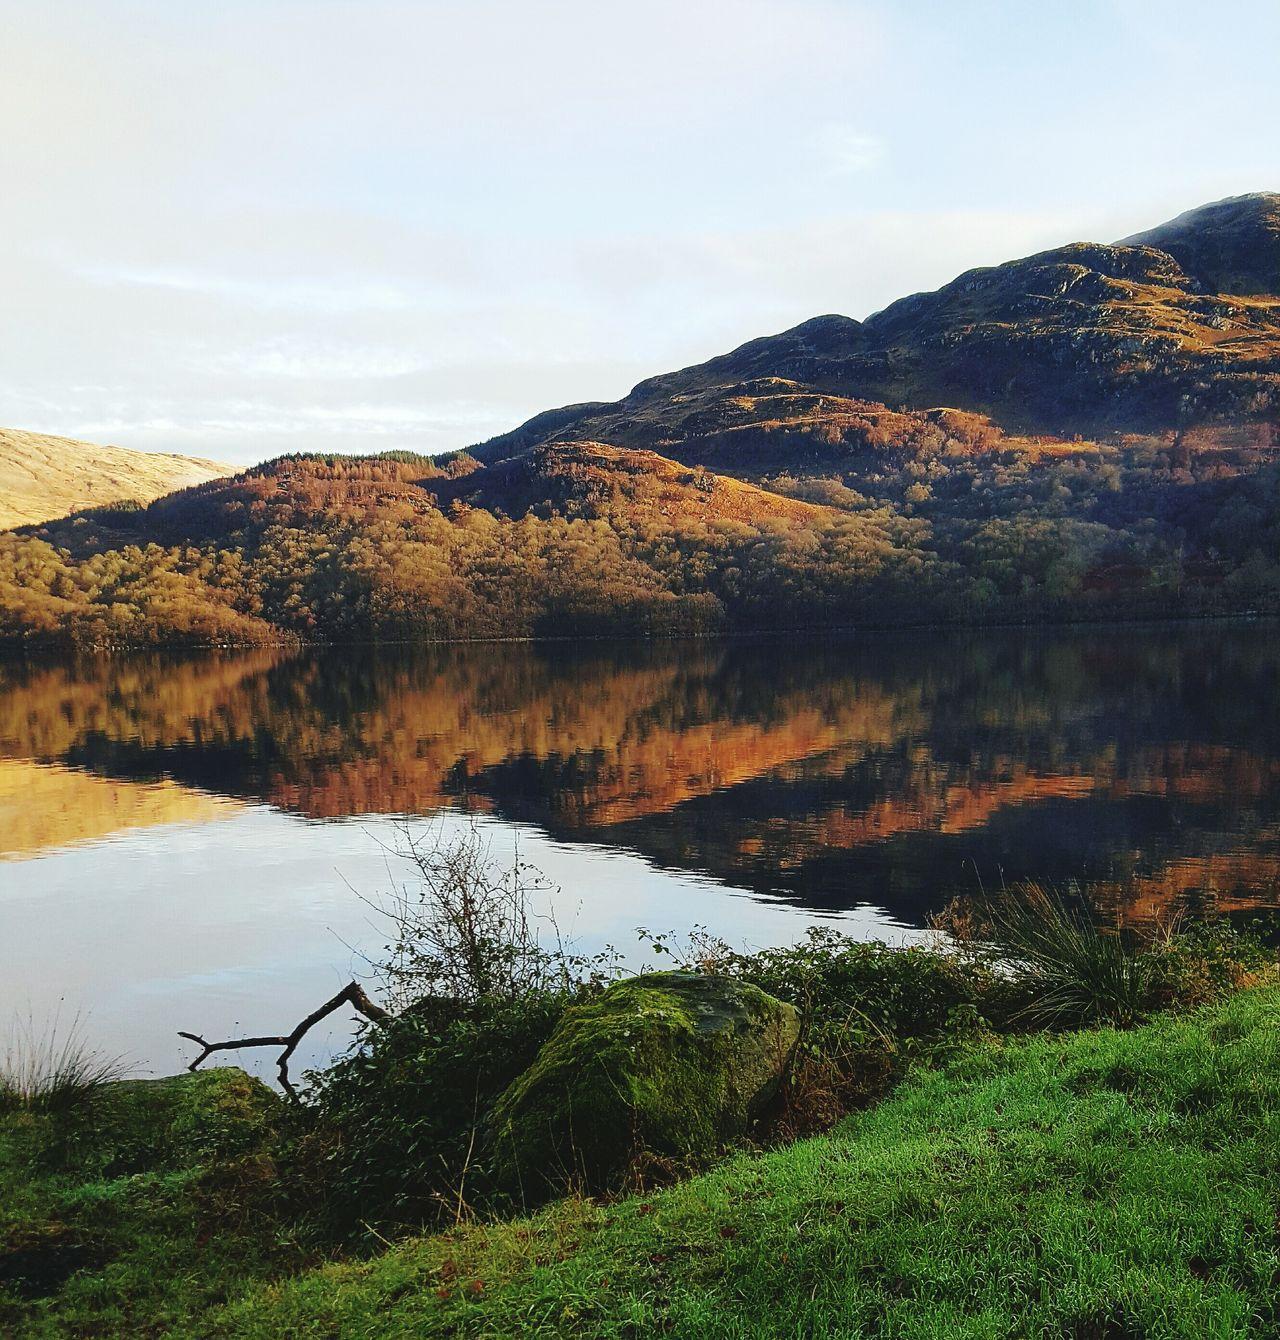 Loch Lomond Beauty In Nature Grass Landscape Outdoors Mountain Tree Green Color Rural Scene No People Day Reflection Scenics Sky Water Lake Nature Springtime LochLomond